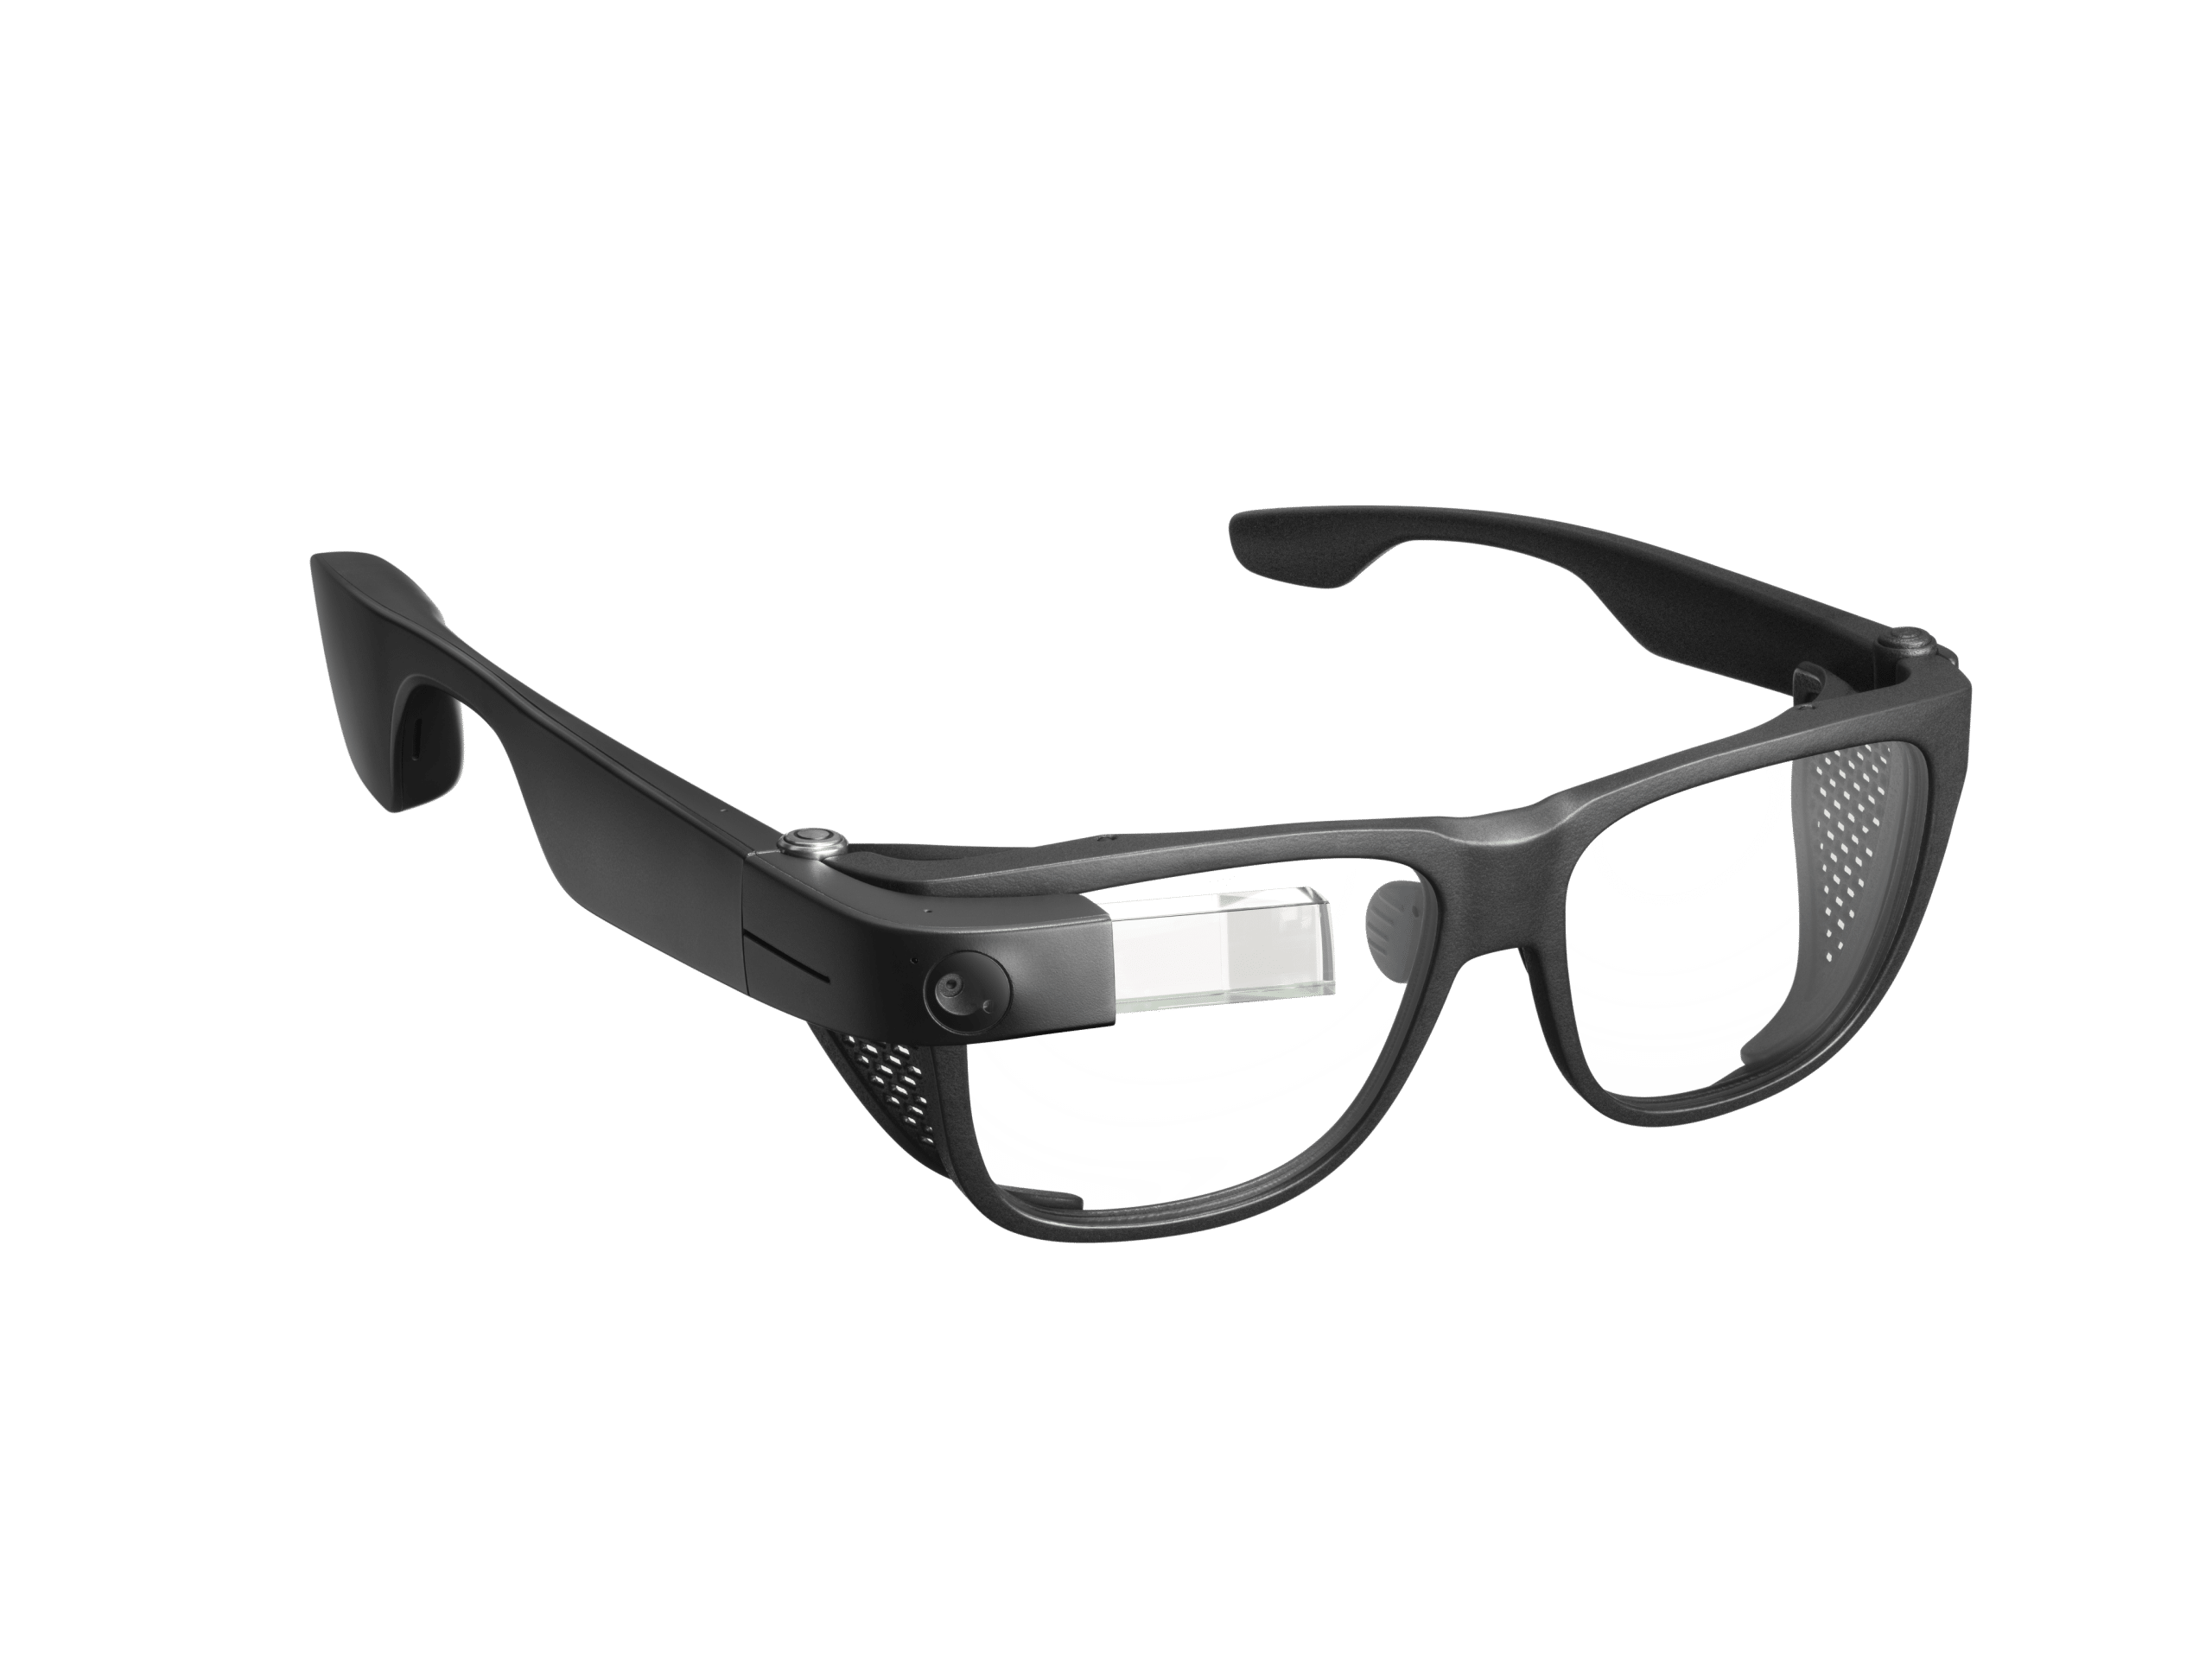 The Envision Glasses, a wearable assistive device